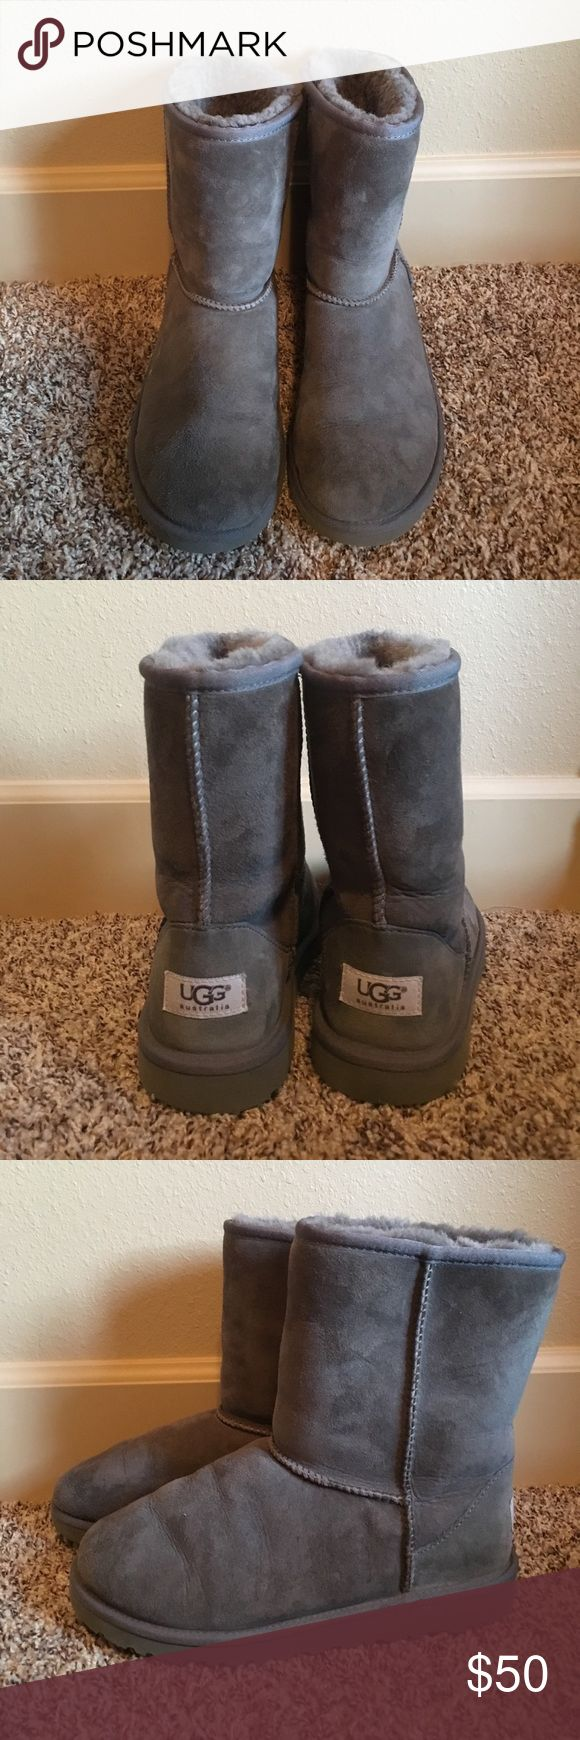 Short Grey Uggs EUR 35 Short grey uggs these are kids uggs size 5 but fit my 6.5 women's size shoe great! Perfect condition! UGG Shoes Winter & Rain Boots